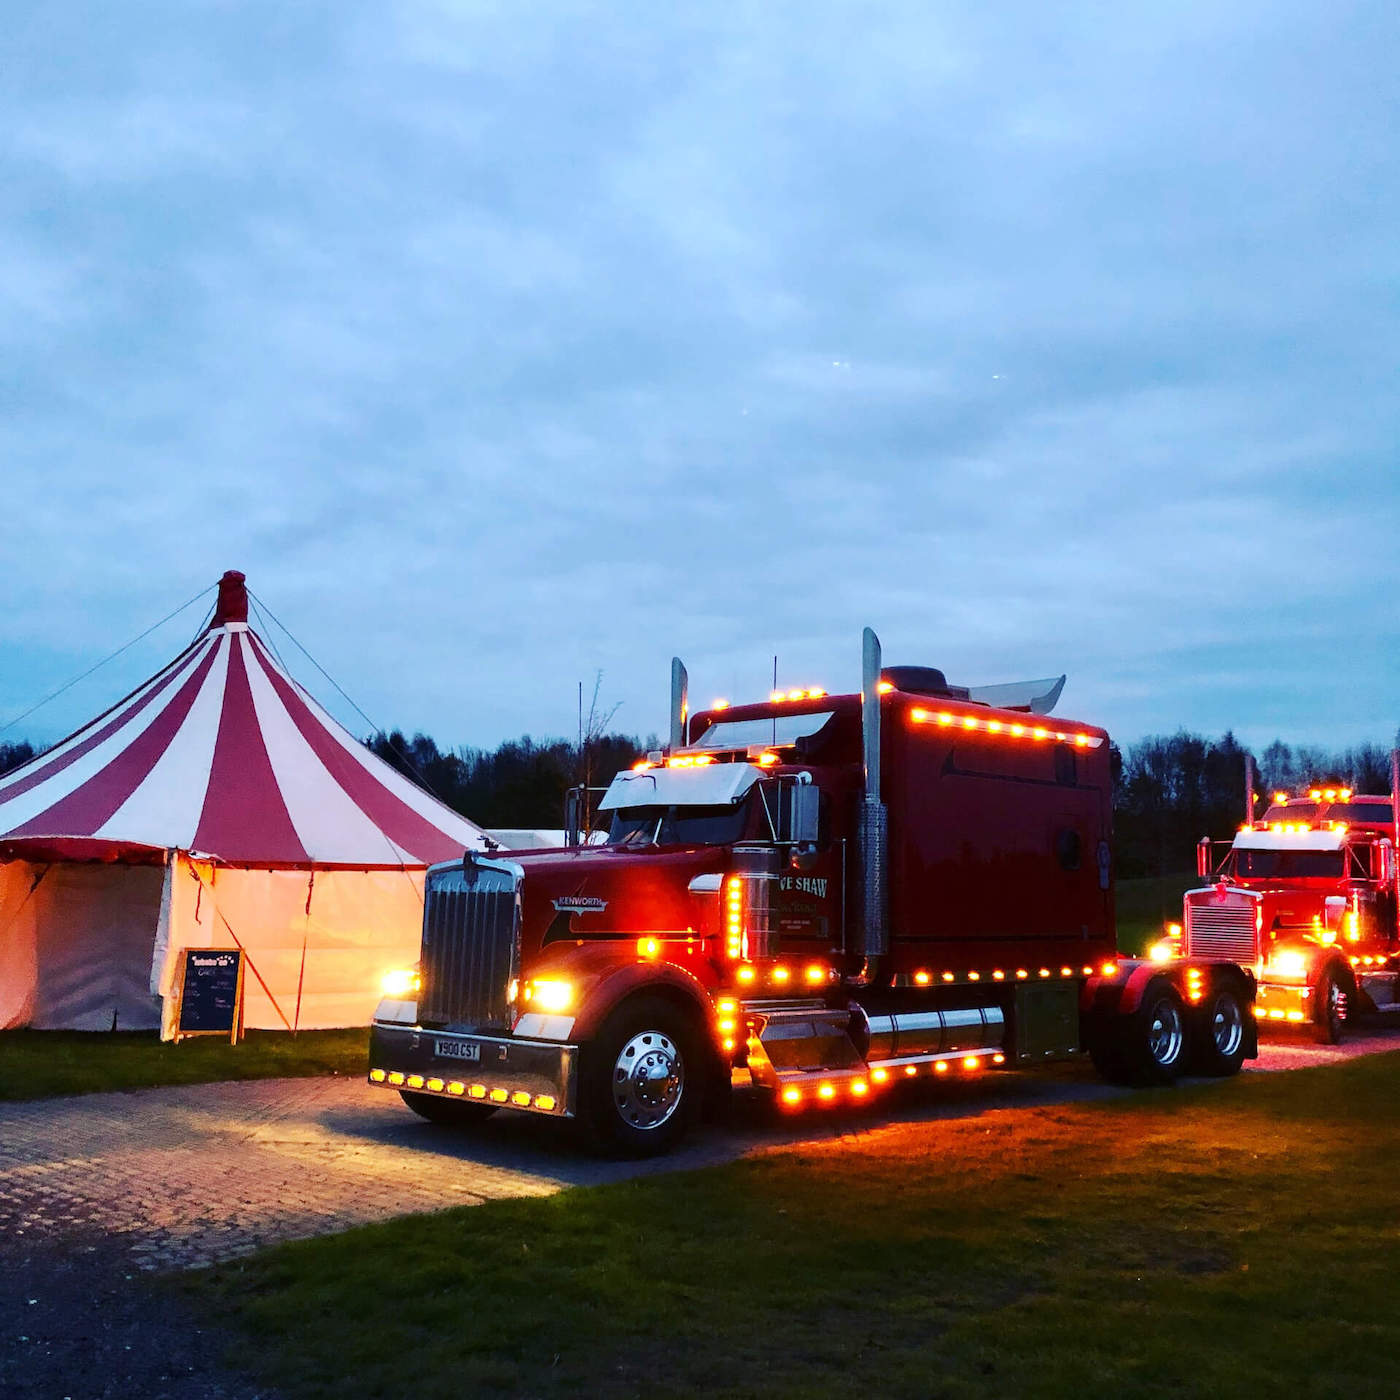 Monster trucks and circus tent